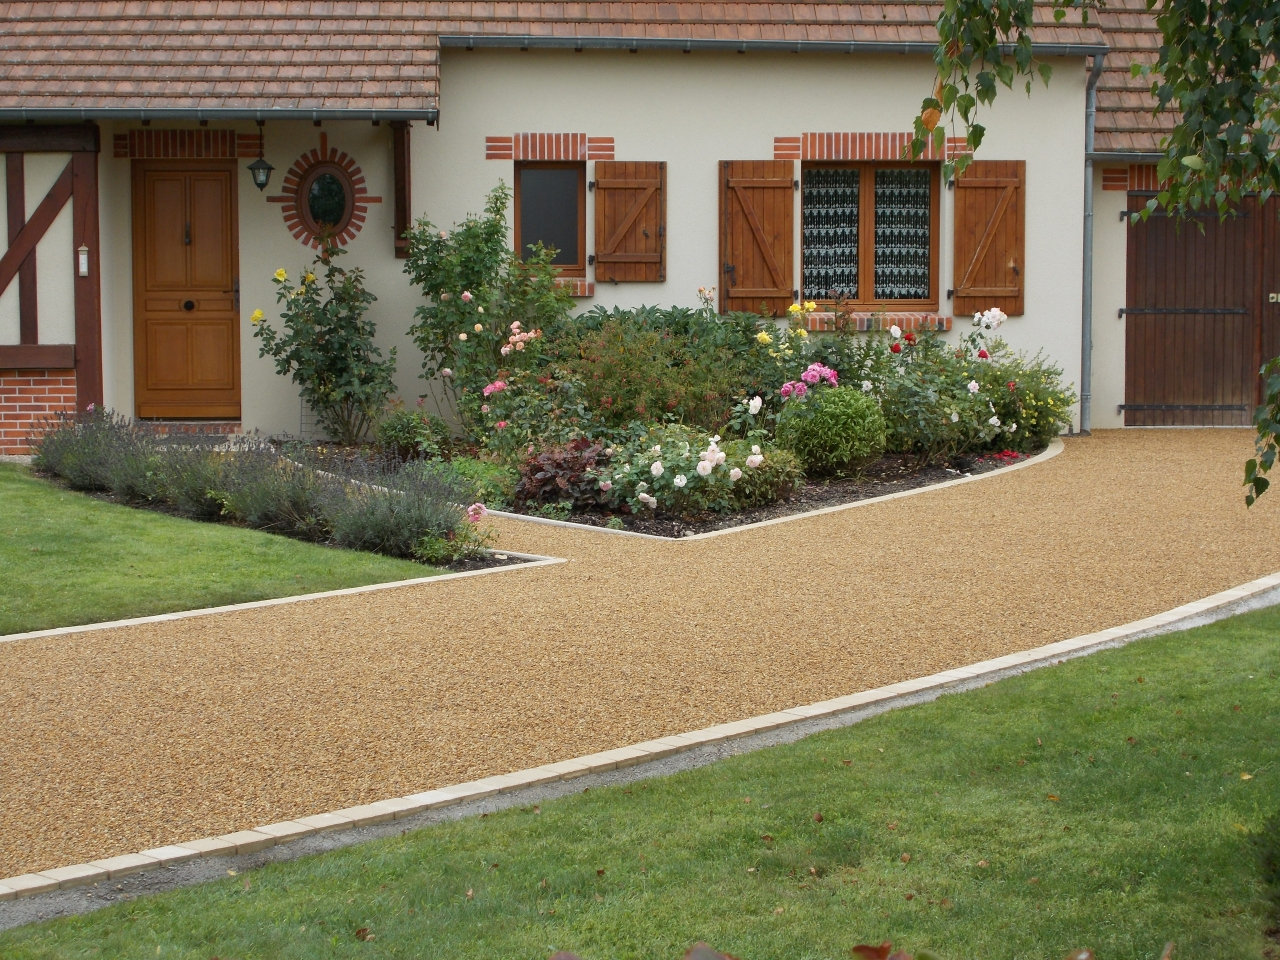 MINERALSTAR® for driveways, paths and patios in England